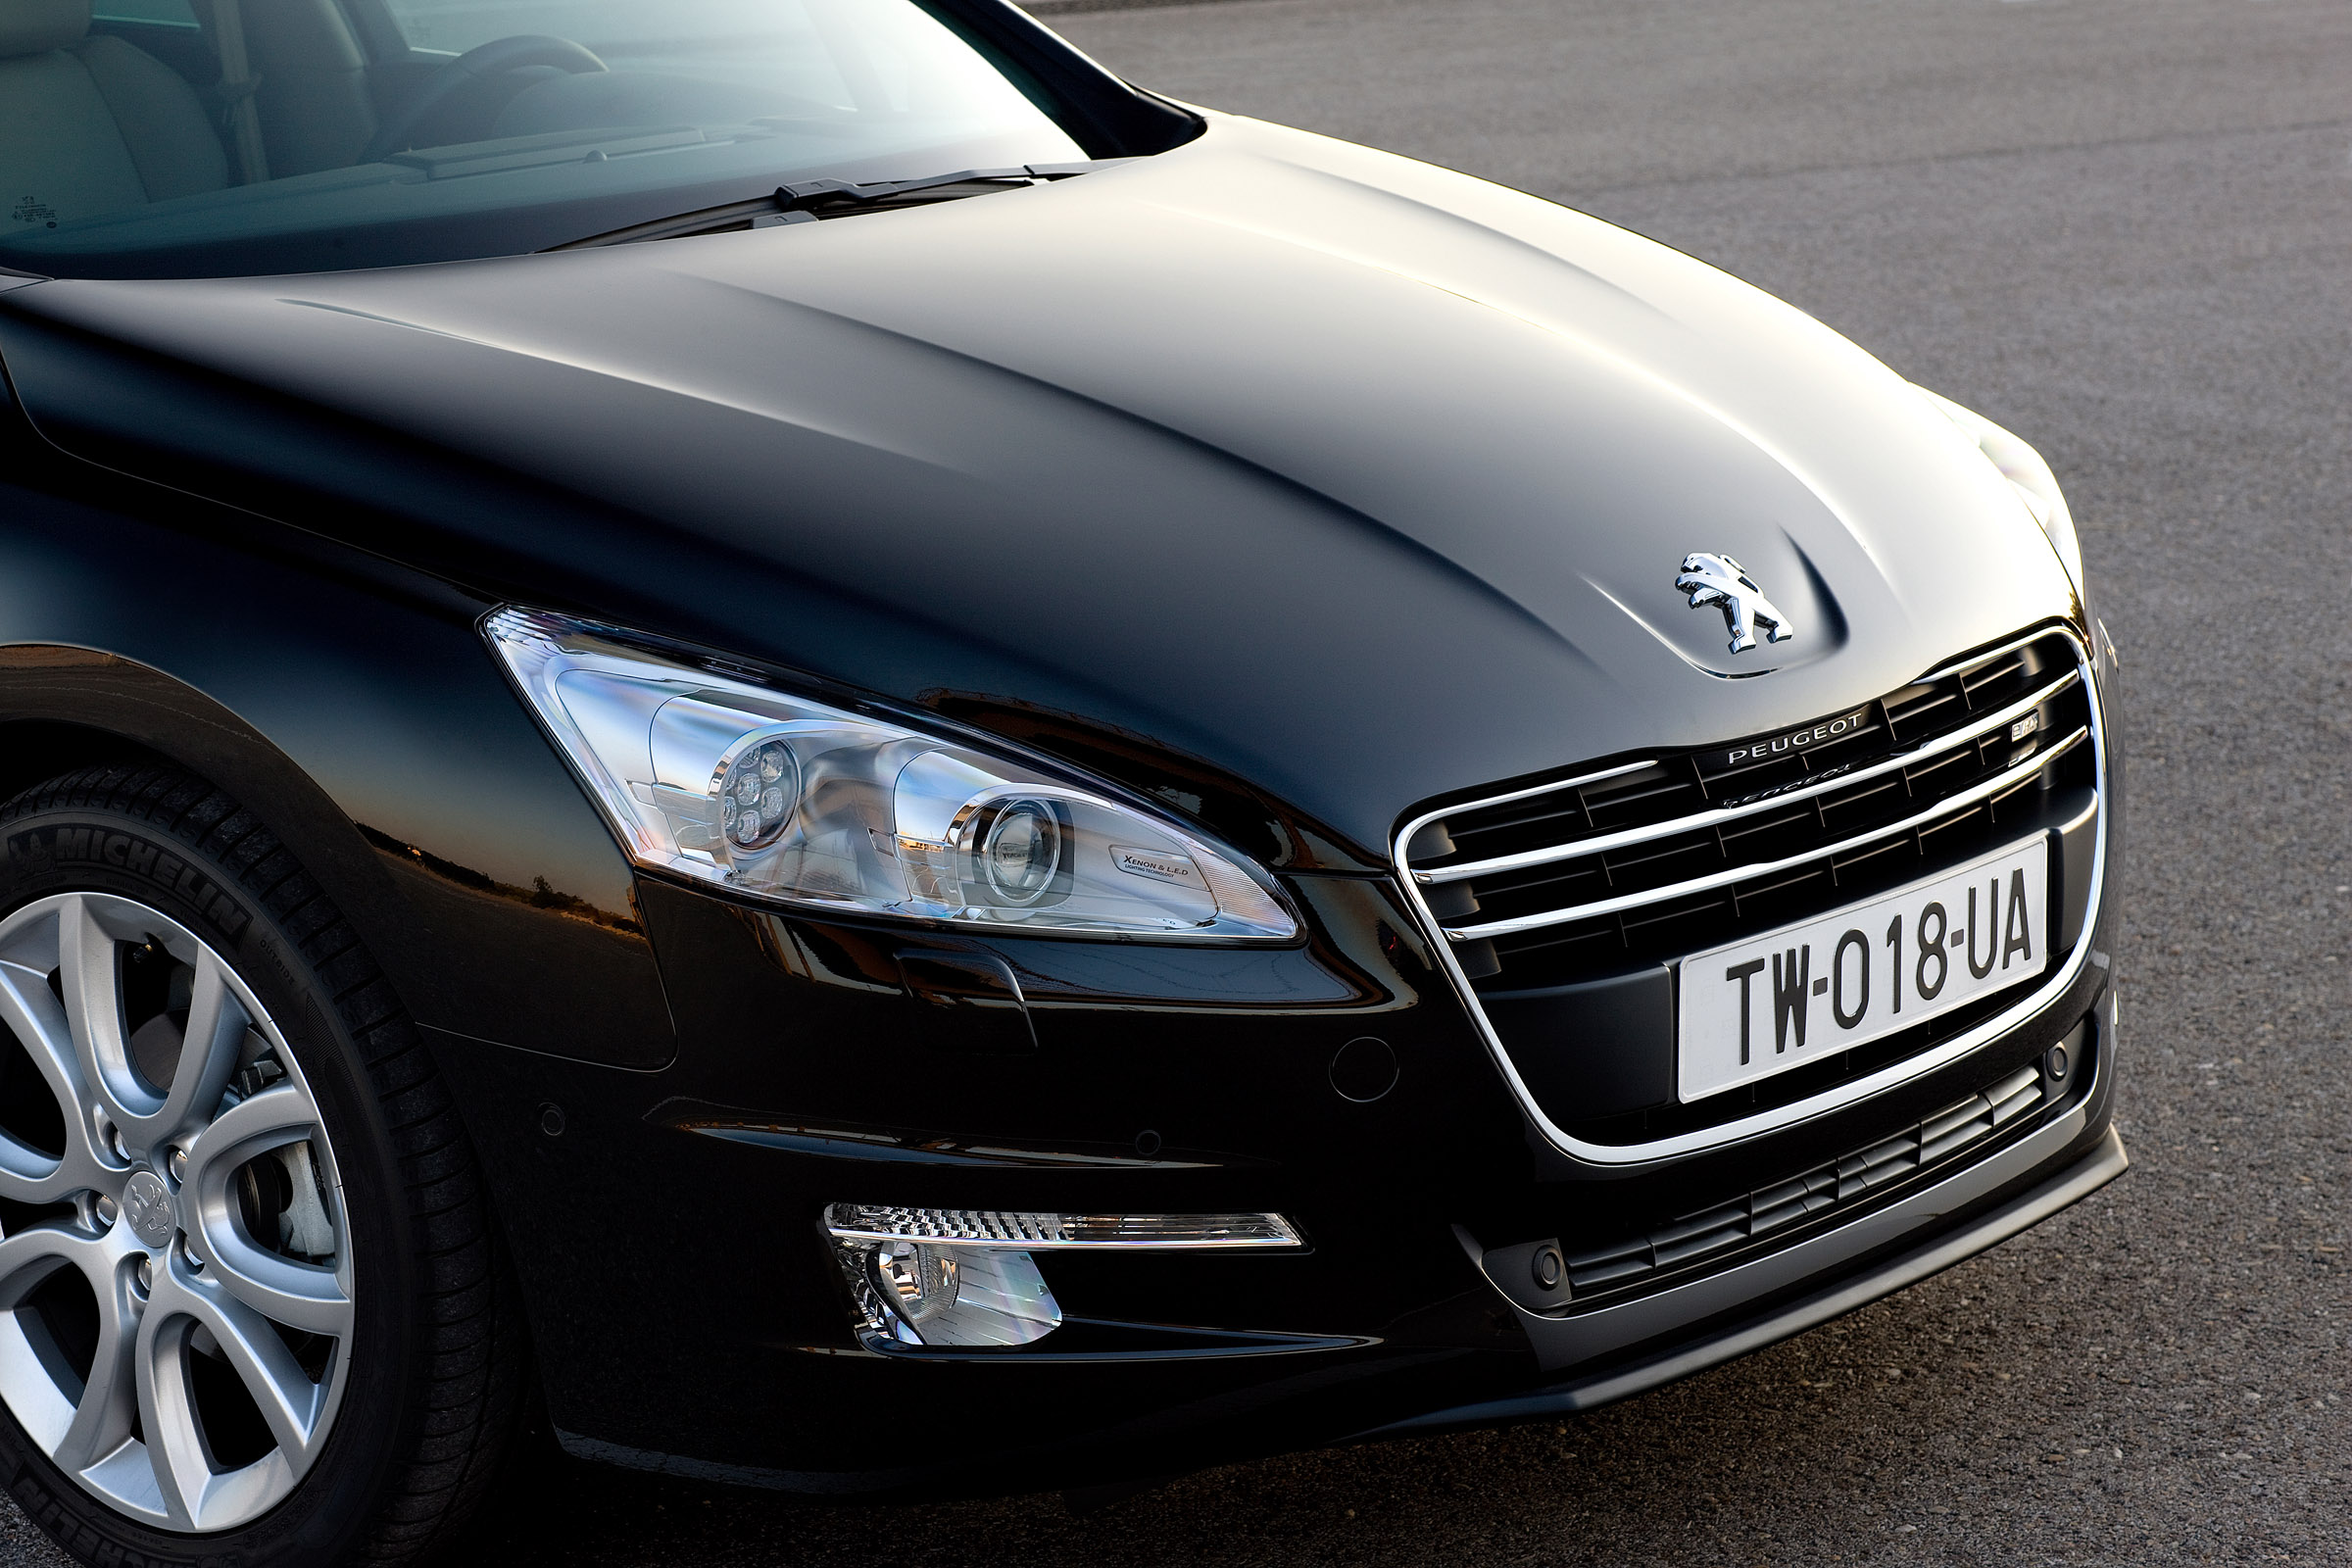 2011 Peugeot 508 Sw Picture 51967